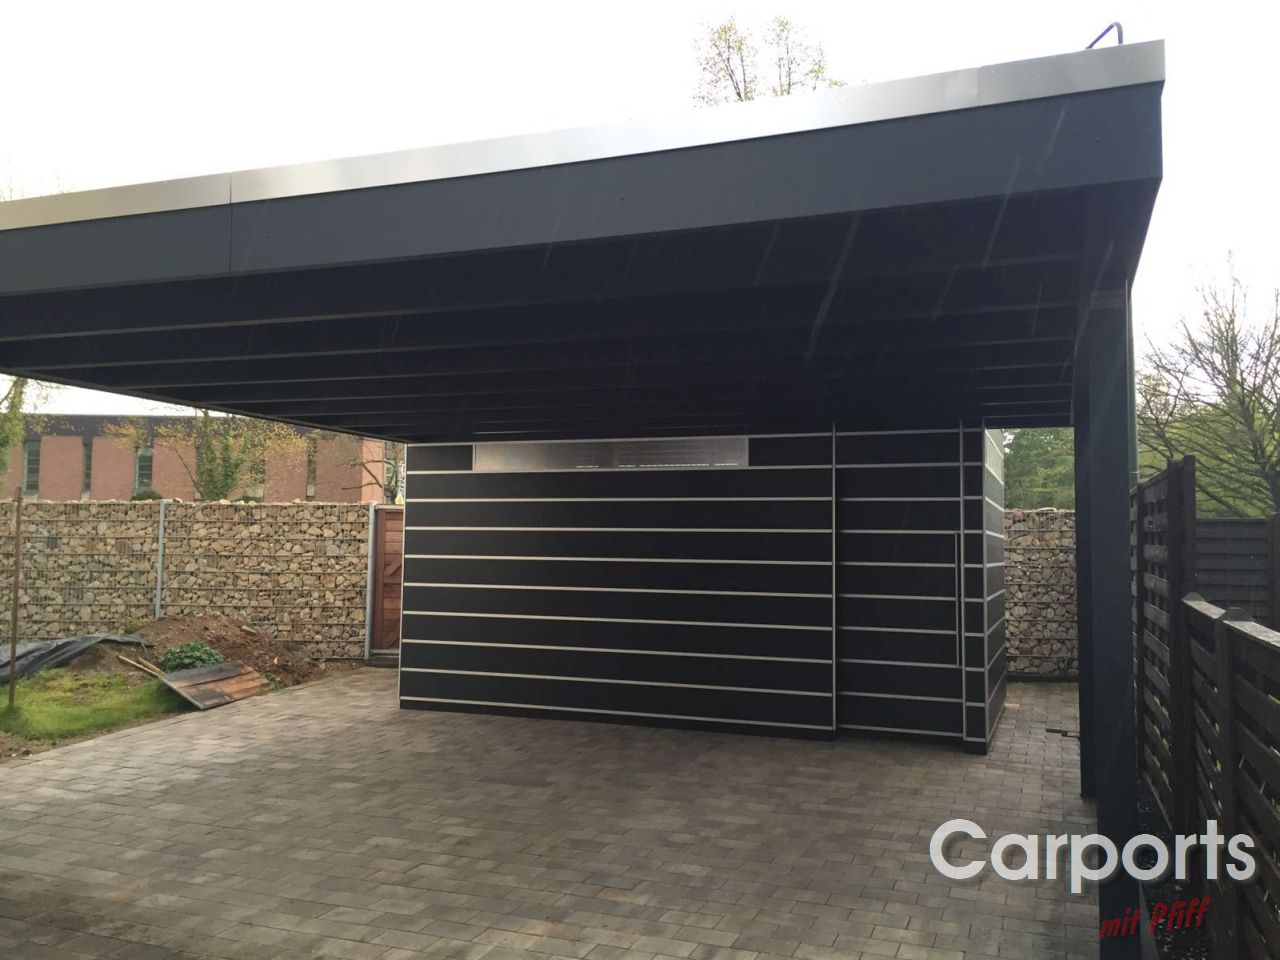 carports mit pfiff hochwertige design carports clever gemacht carports mit pfiff. Black Bedroom Furniture Sets. Home Design Ideas